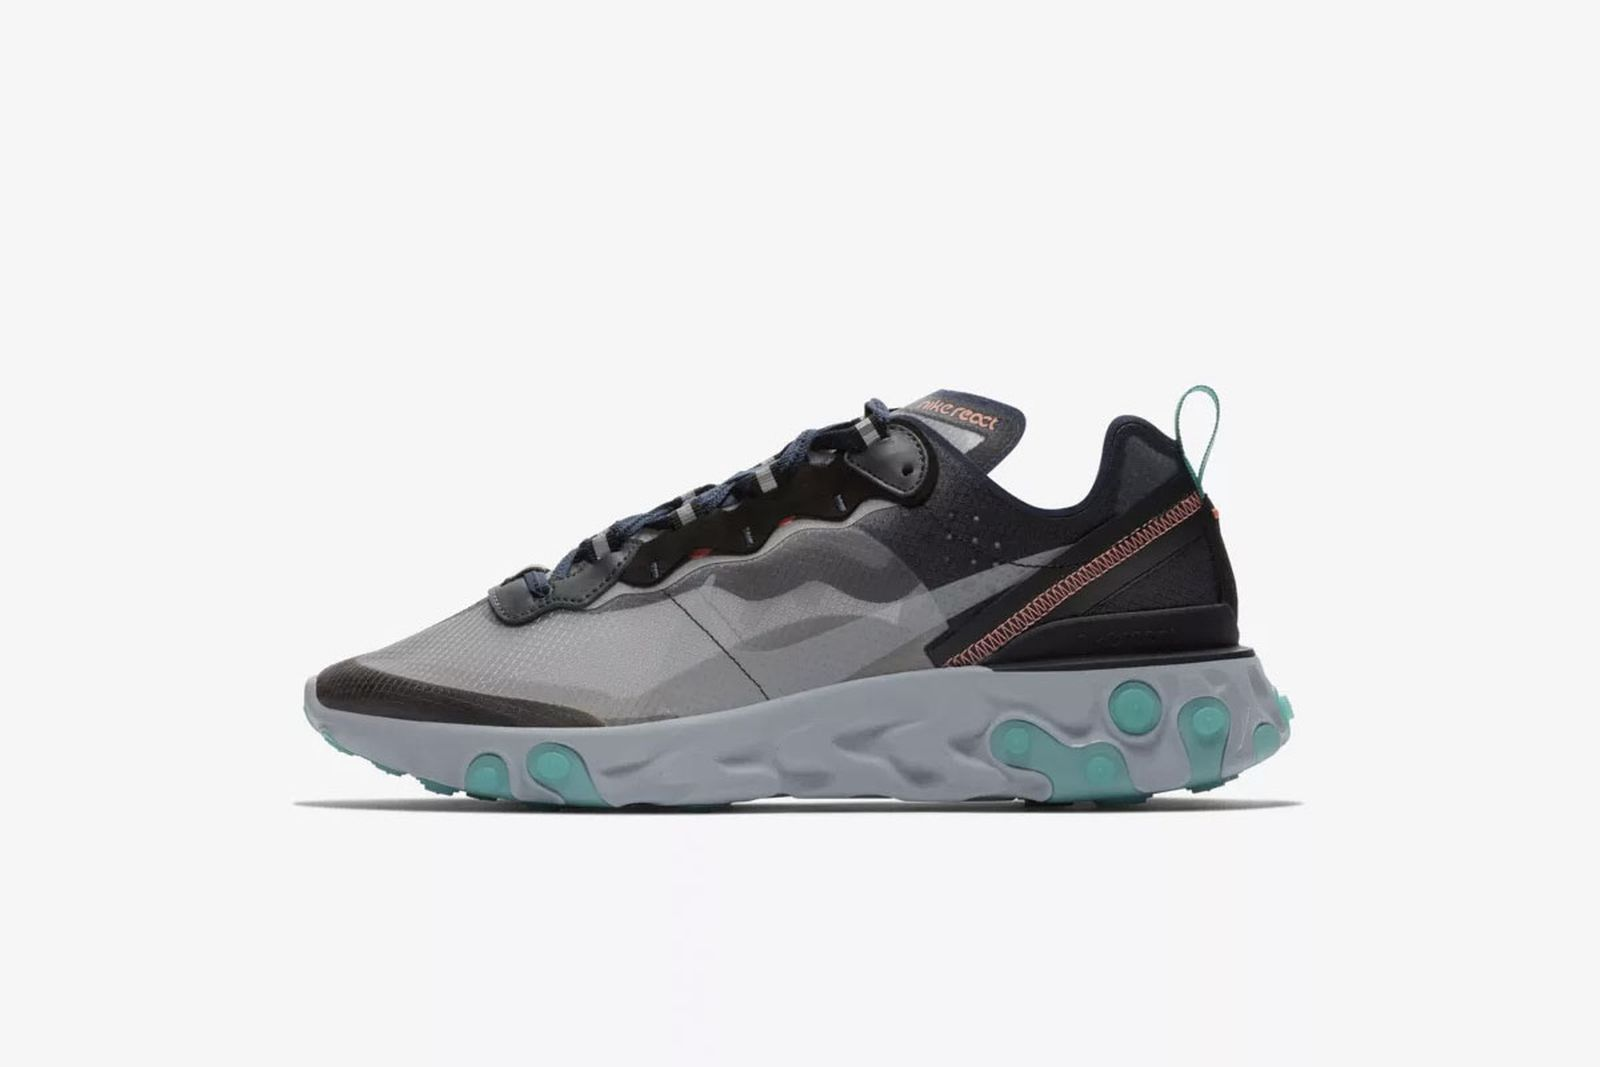 nike react element 87 release date price neptune green